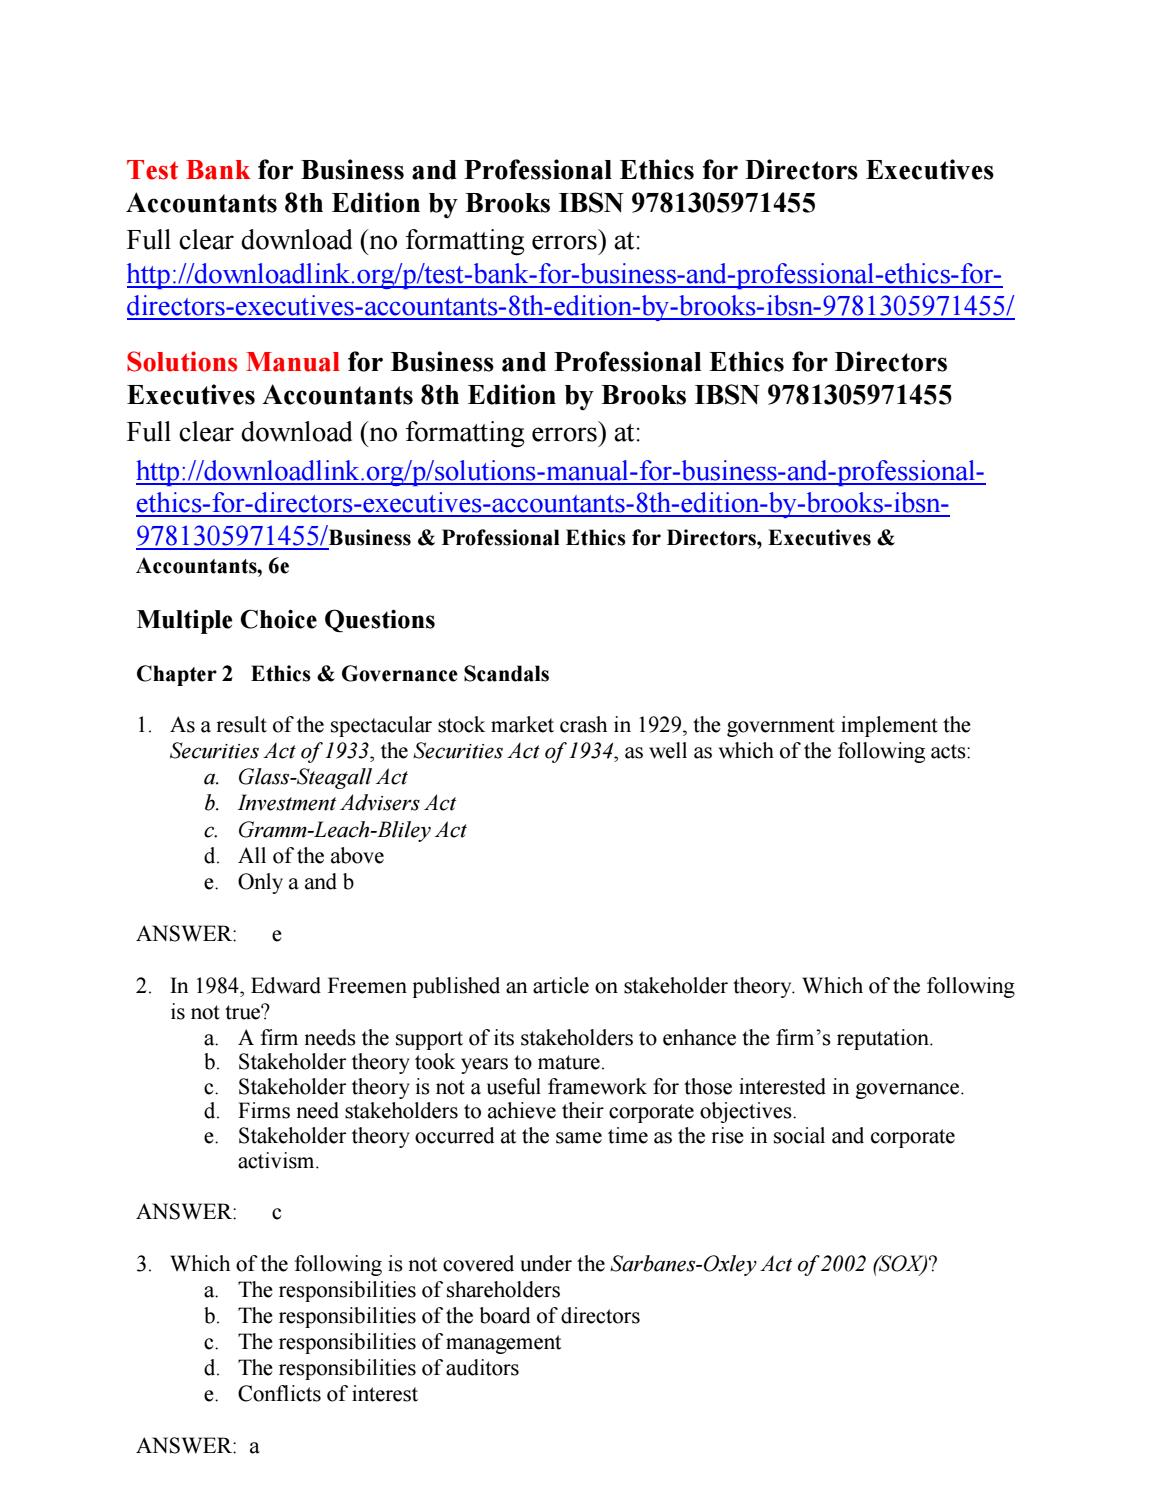 test bank for business and professional ethics for directors rh issuu com NordicTrack Act Manual MCO P1000.6G Acts Manual